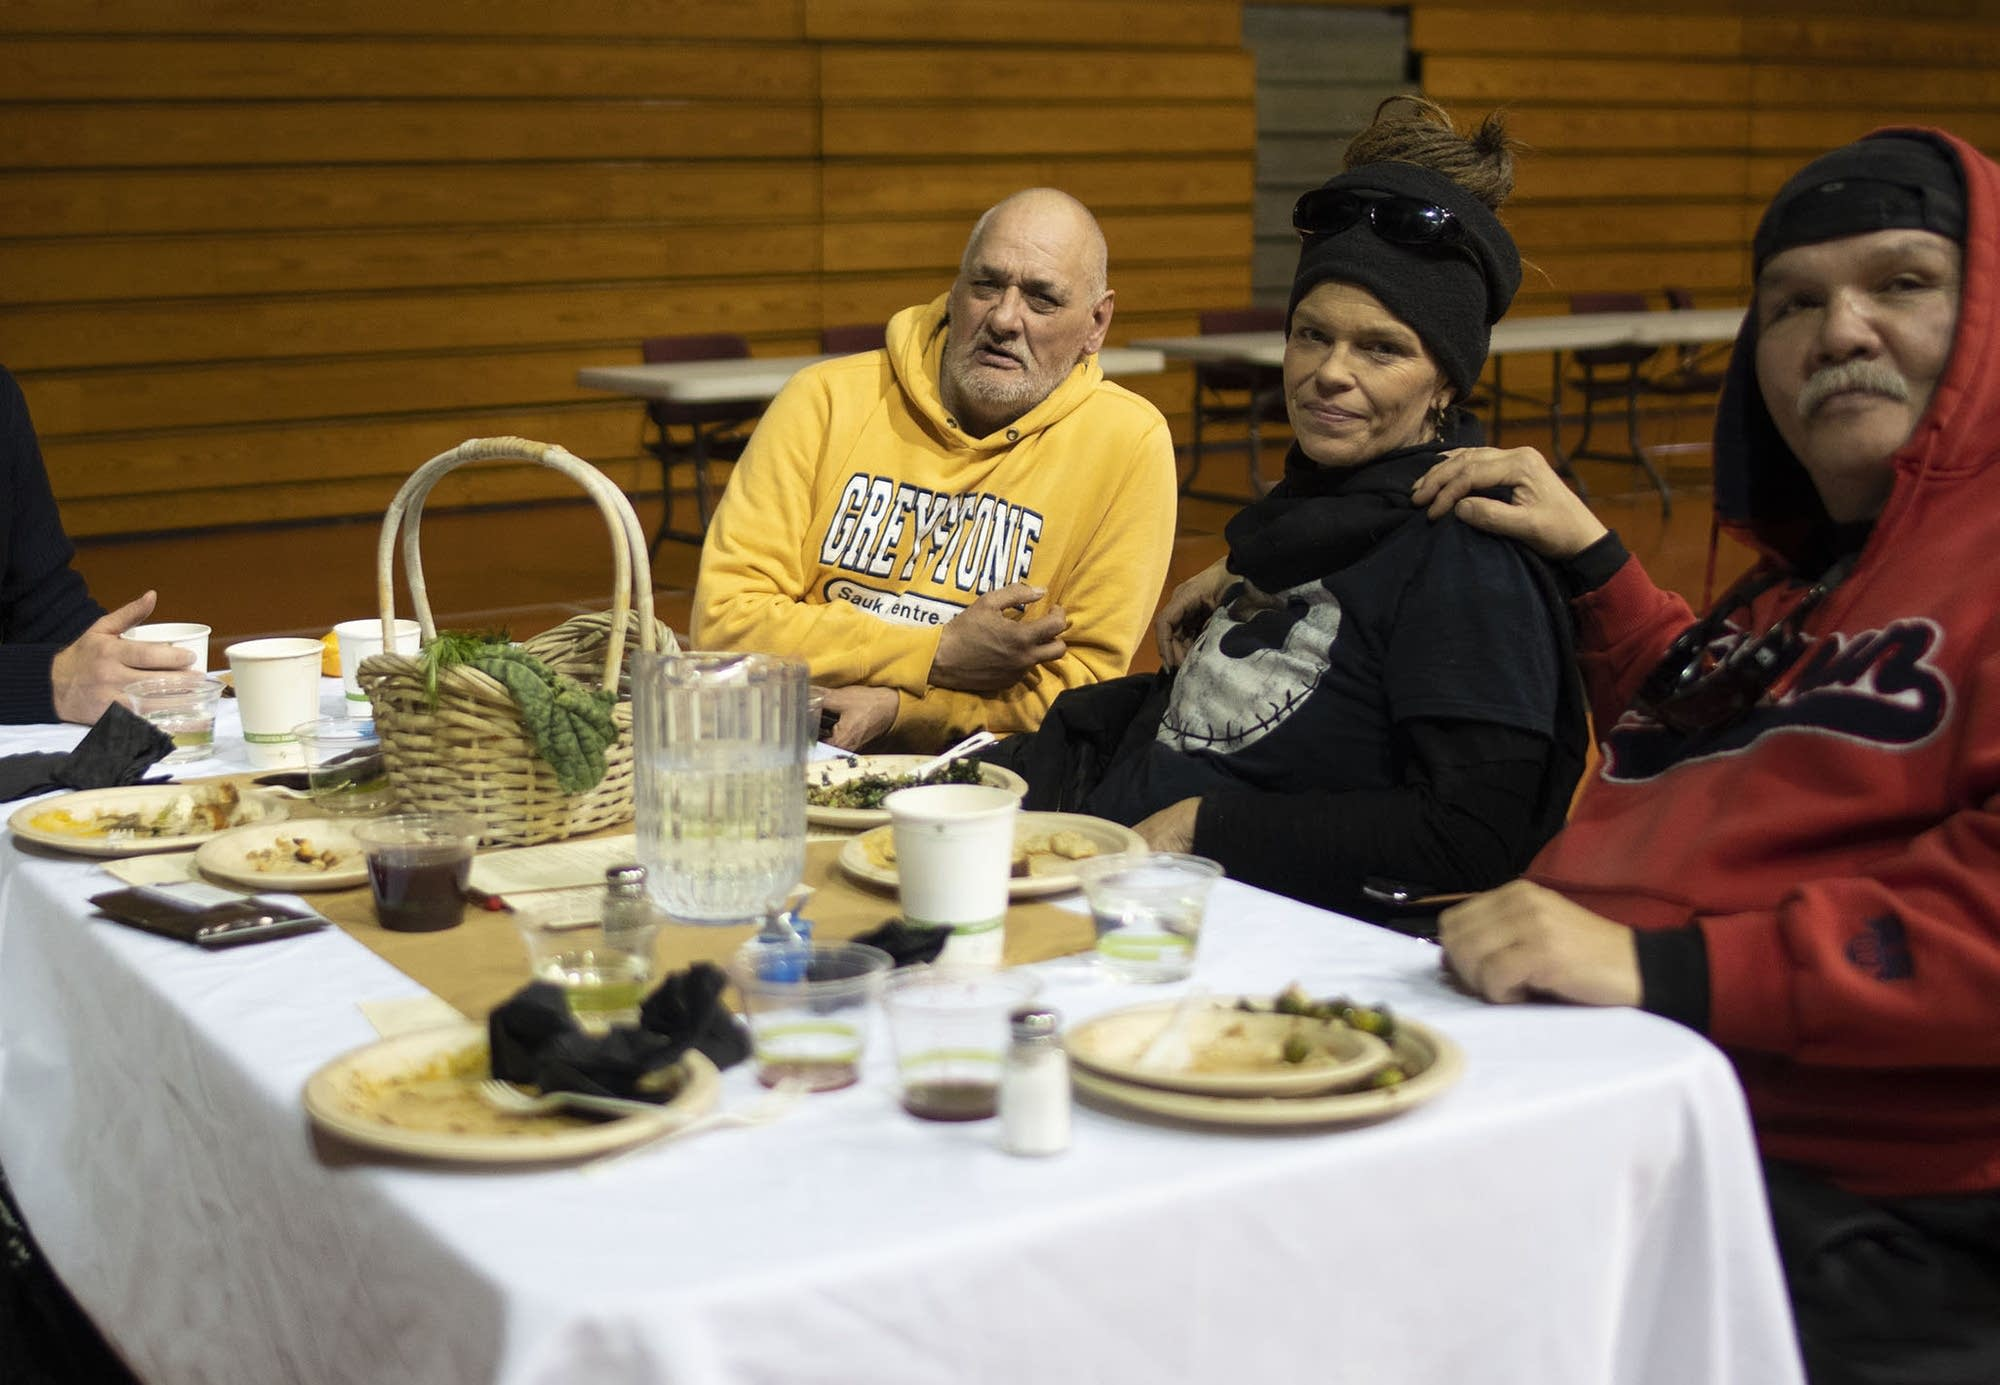 Residents of the navigation center gather for a community feast.